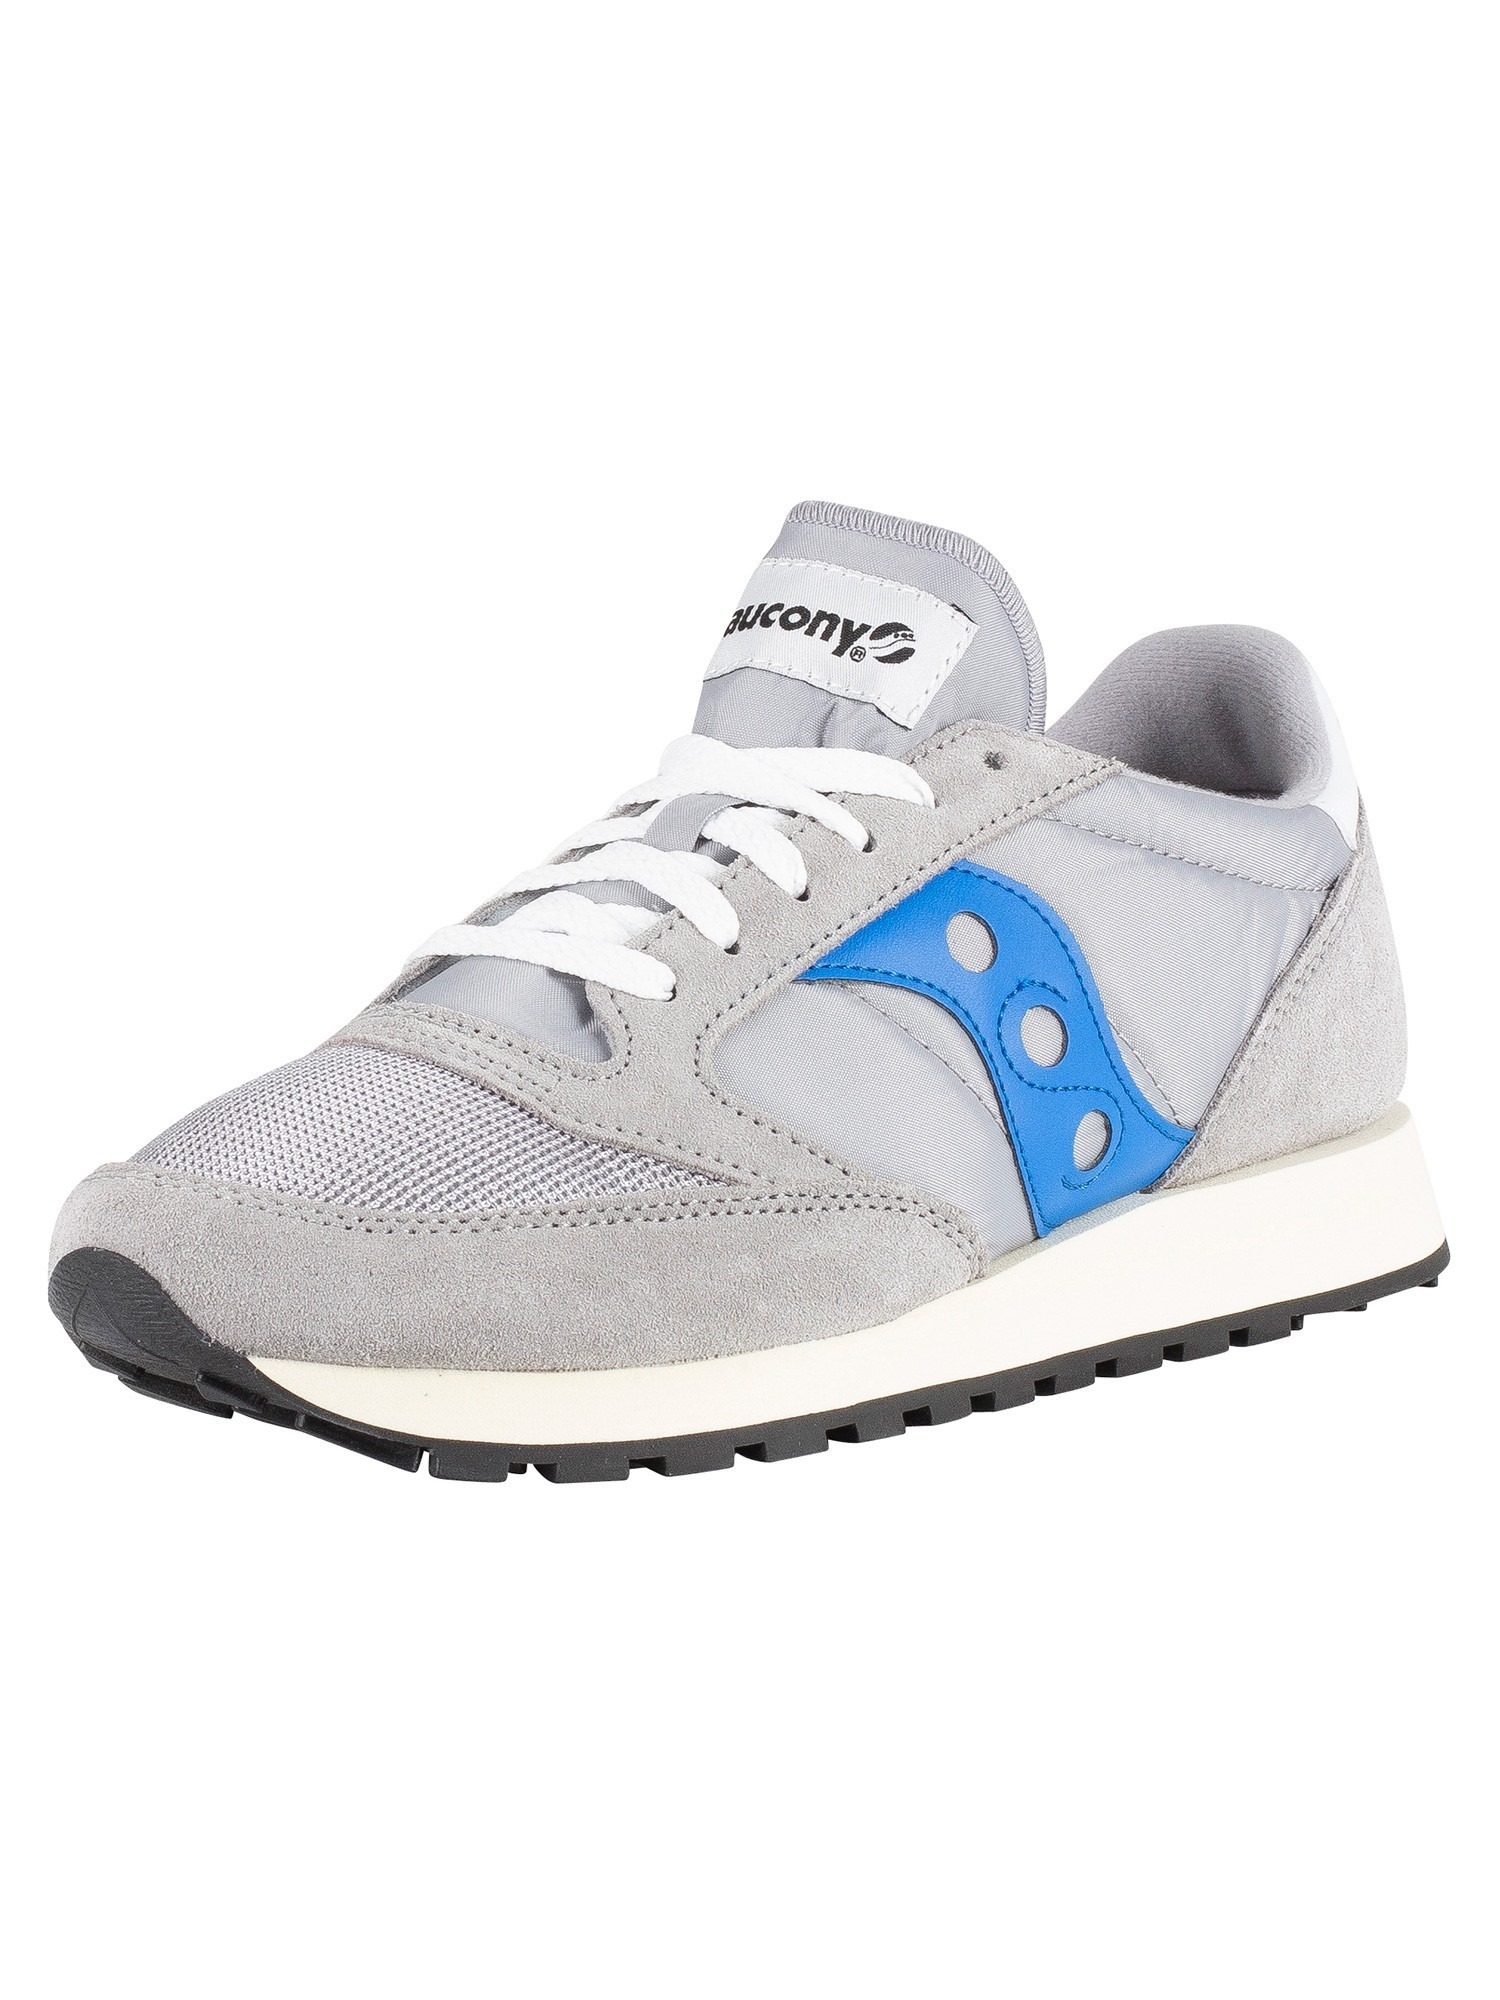 separation shoes 3a127 6887b Saucony Jazz Original Vintage Trainers - Grey Blue